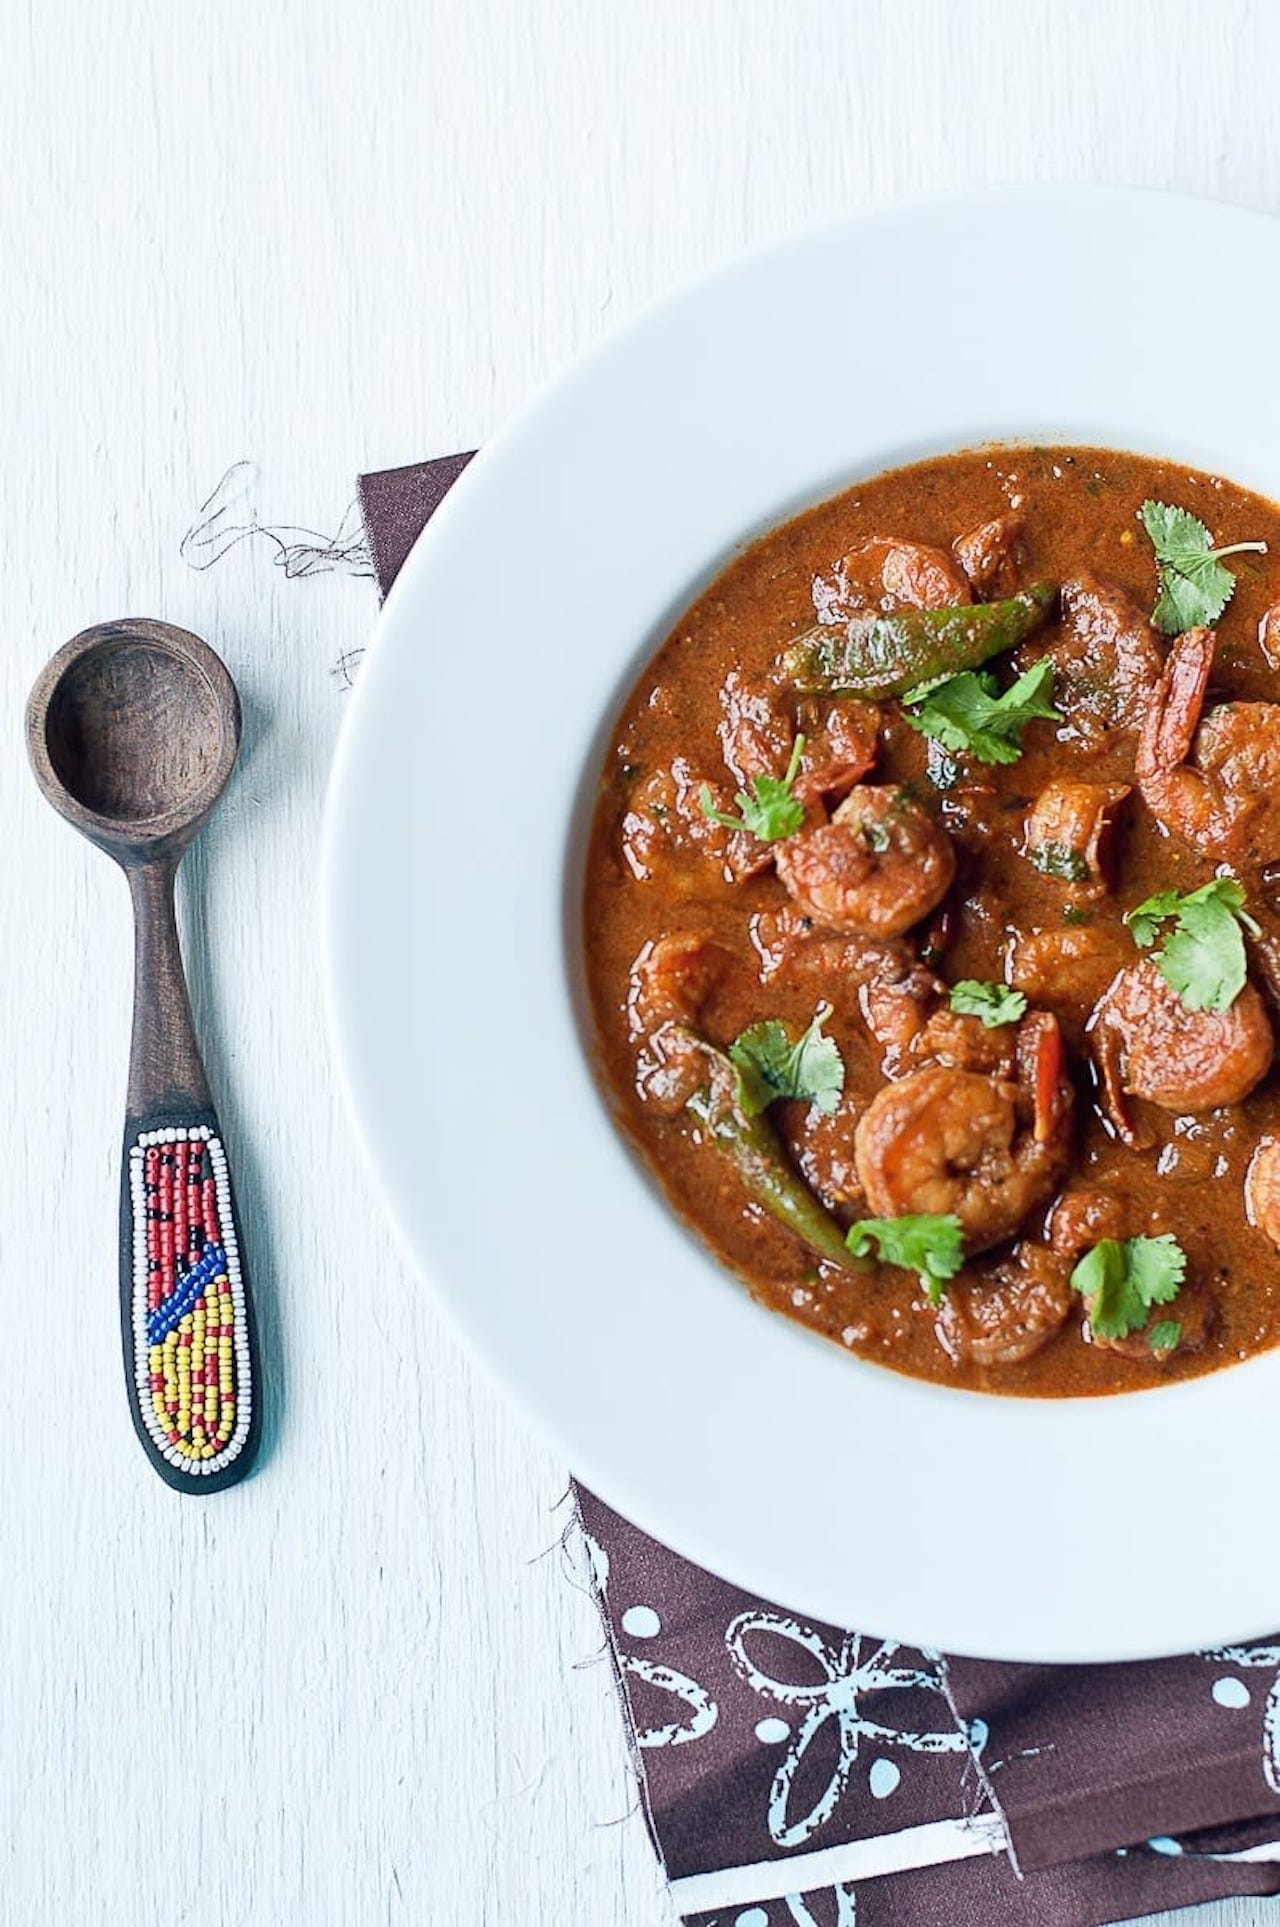 Madras Shrimp Masala - Guest Post by Radhika @ Food for 7 Stages of Life 2